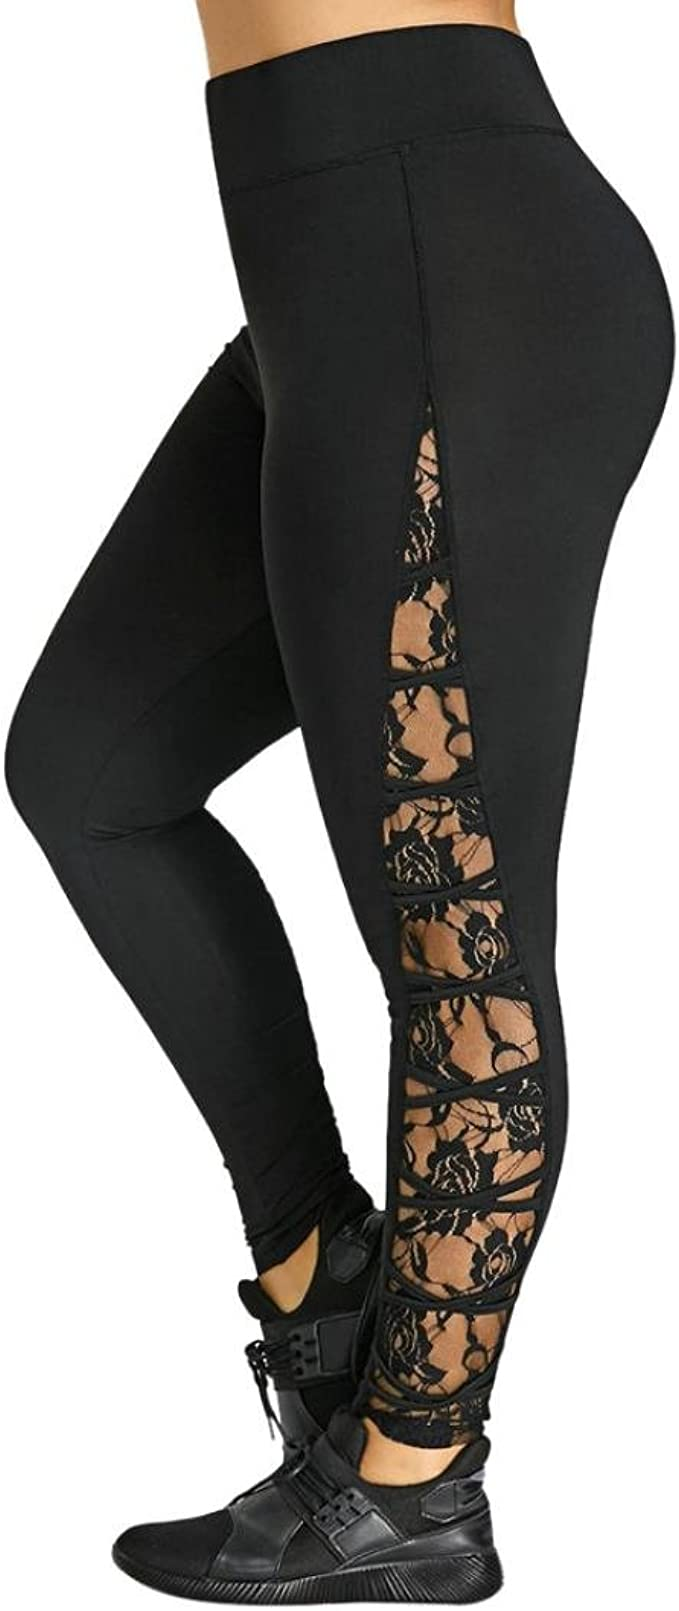 Amazon.com: E-Scenery - Leggings de encaje de cintura alta ...